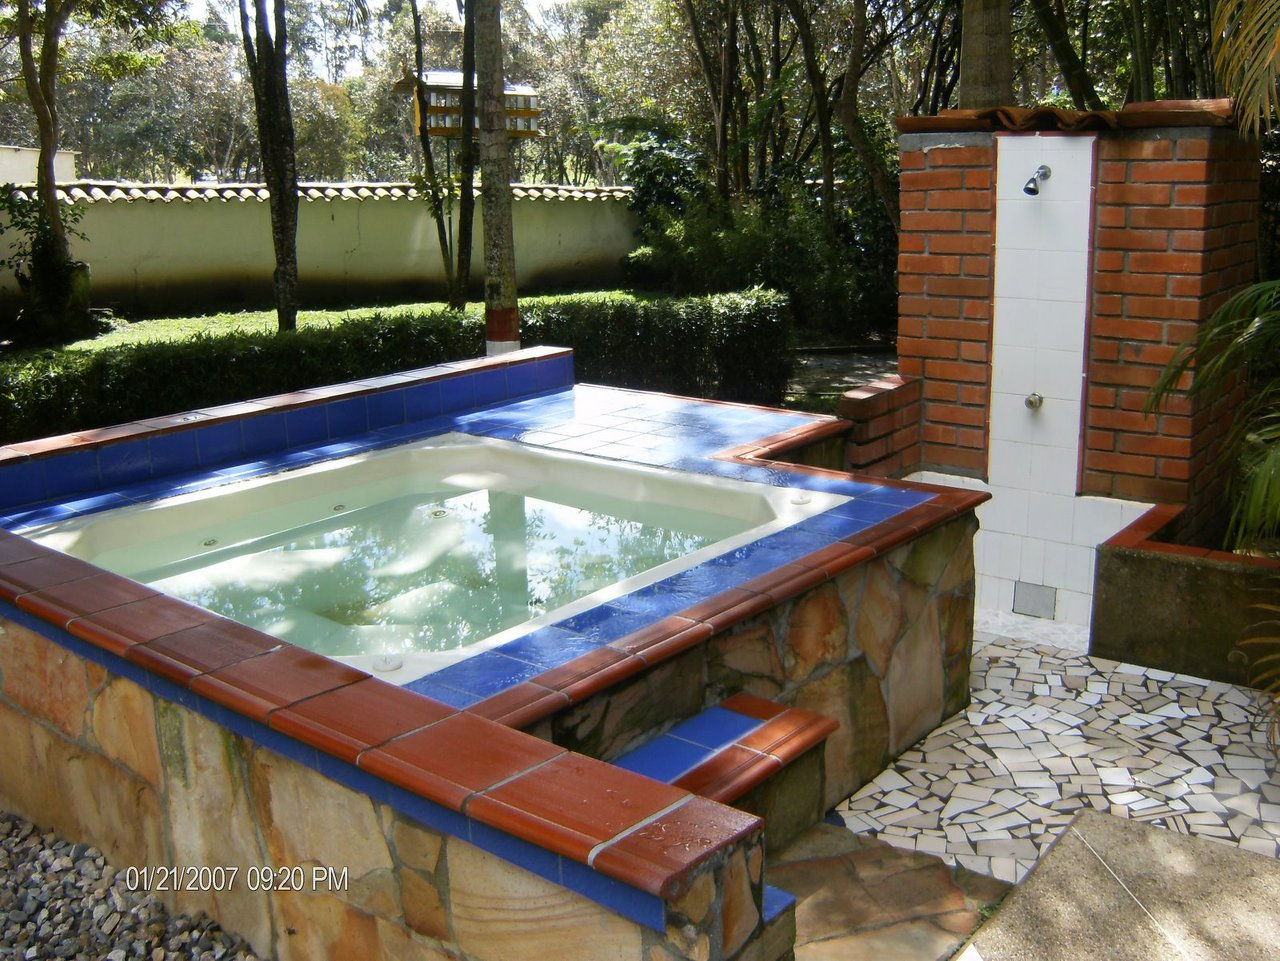 Campo de veraneo created by gabrield69 based on lifestyle mentor express - Piscina jacuzzi exterior ...